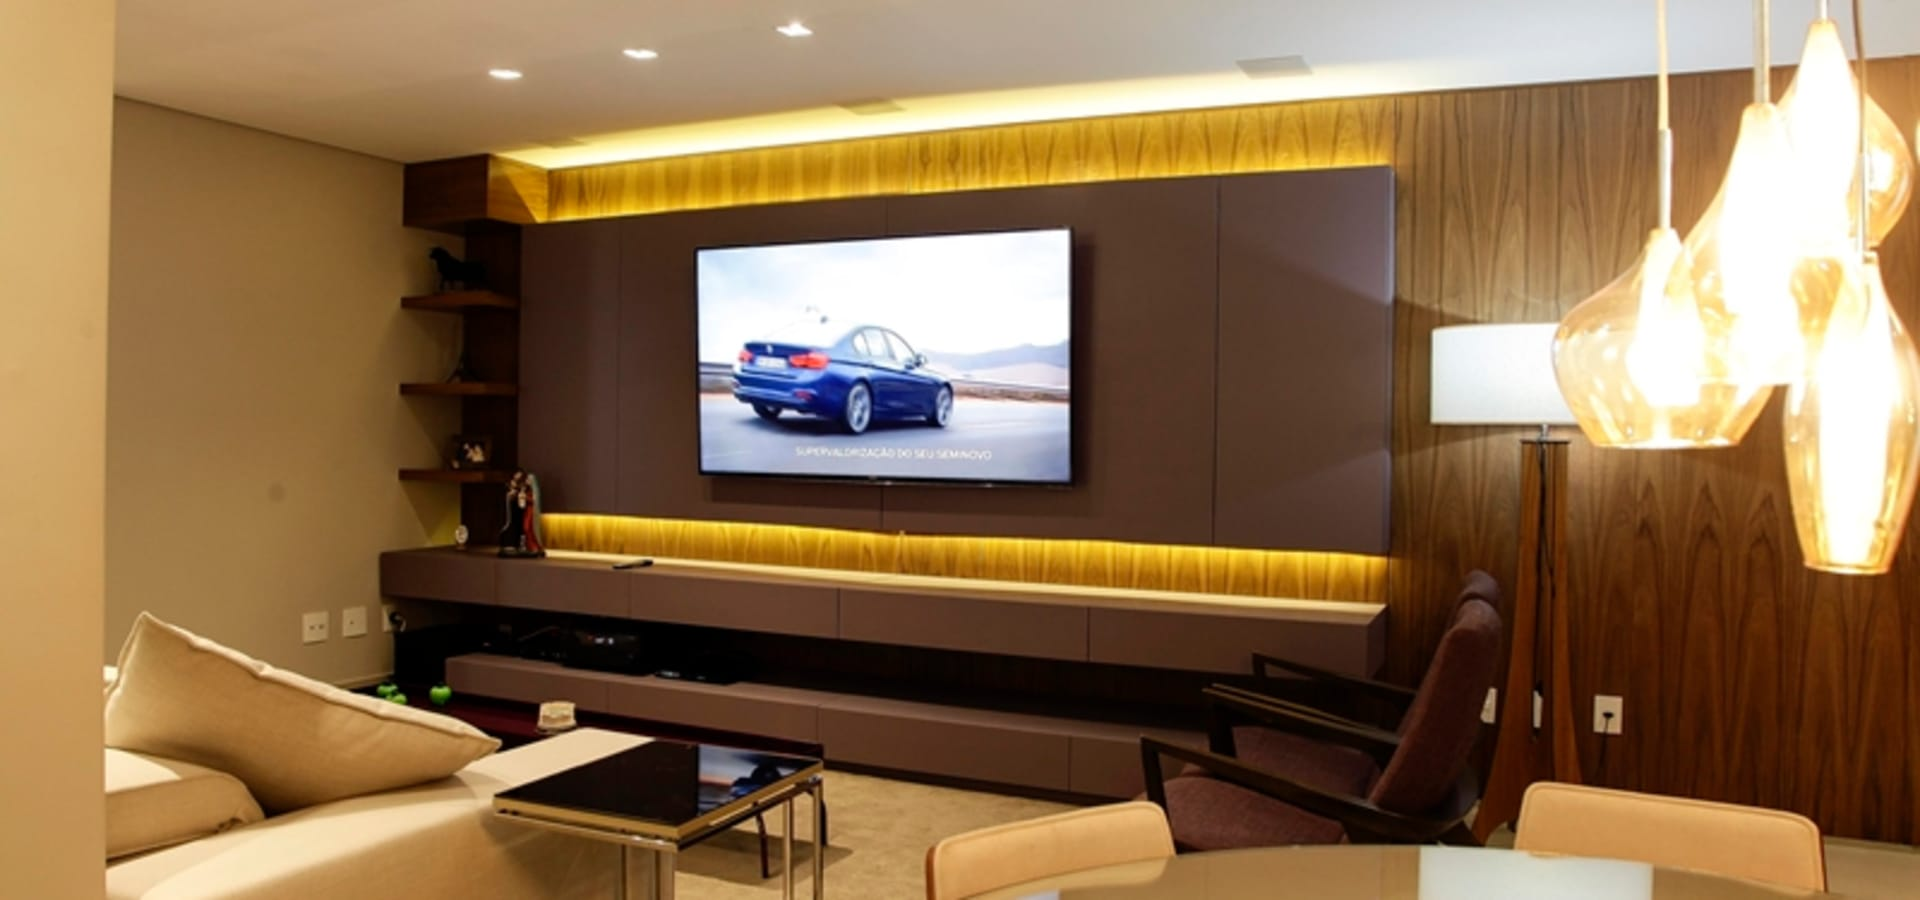 projeto sala home theater por griffe home theater homify. Black Bedroom Furniture Sets. Home Design Ideas